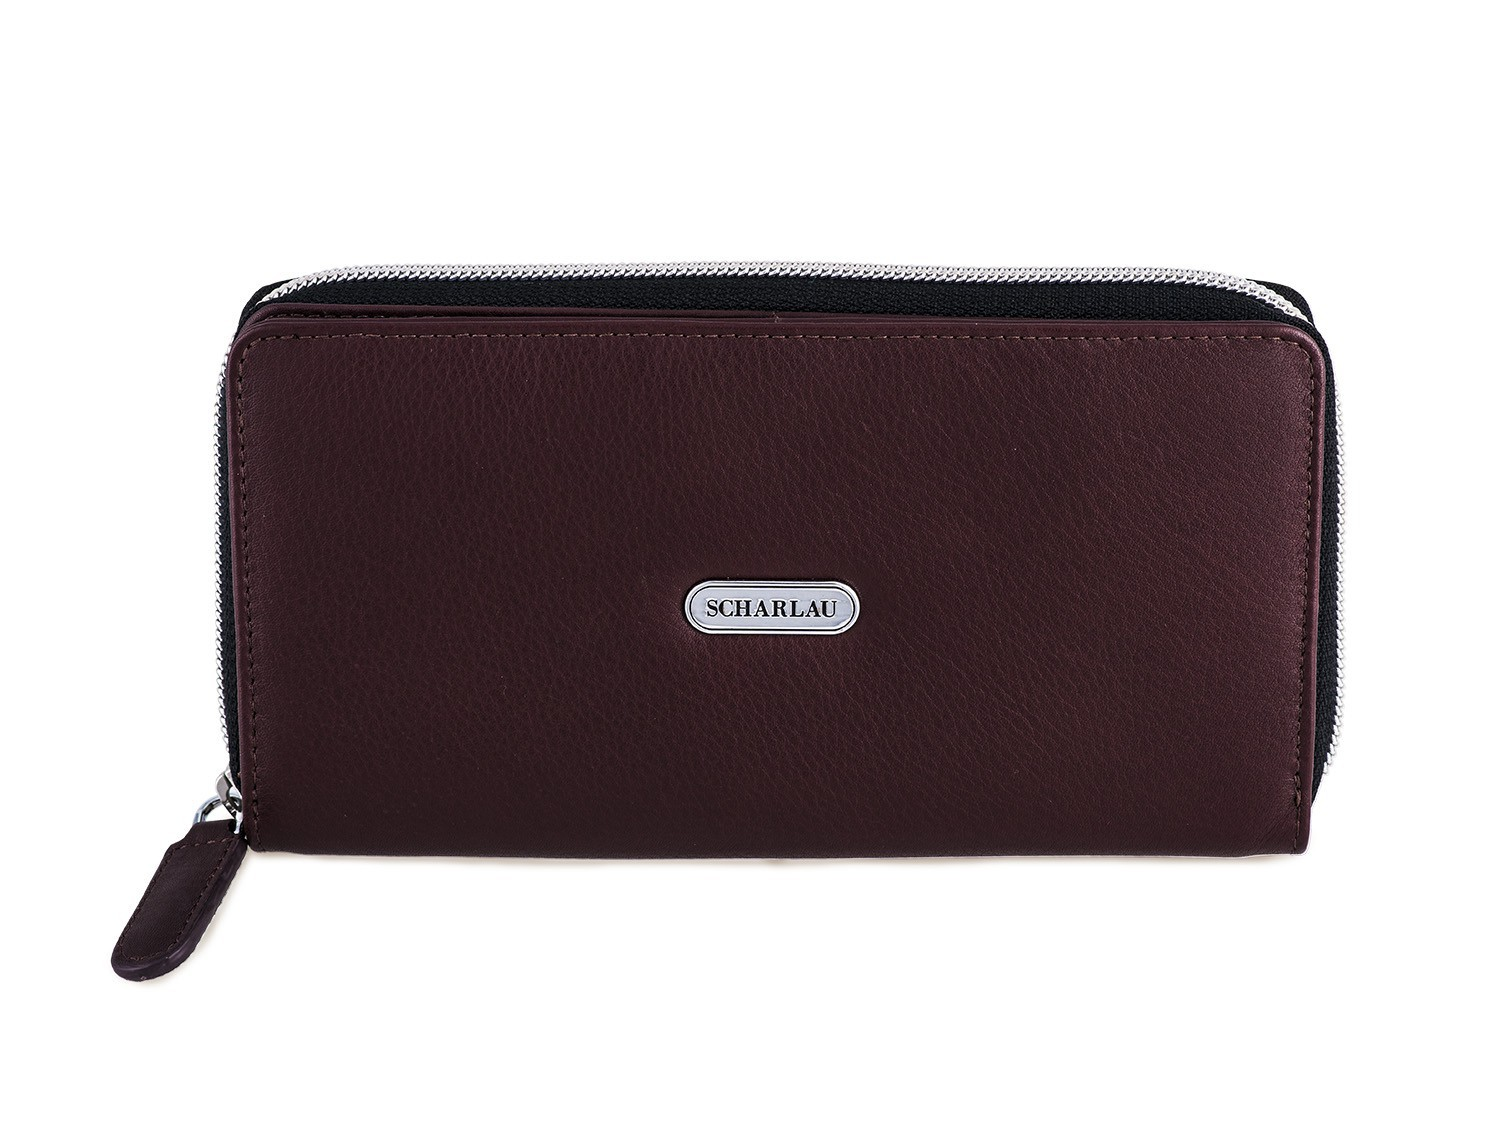 Leather women's wallet with coin pocket in burgundy front